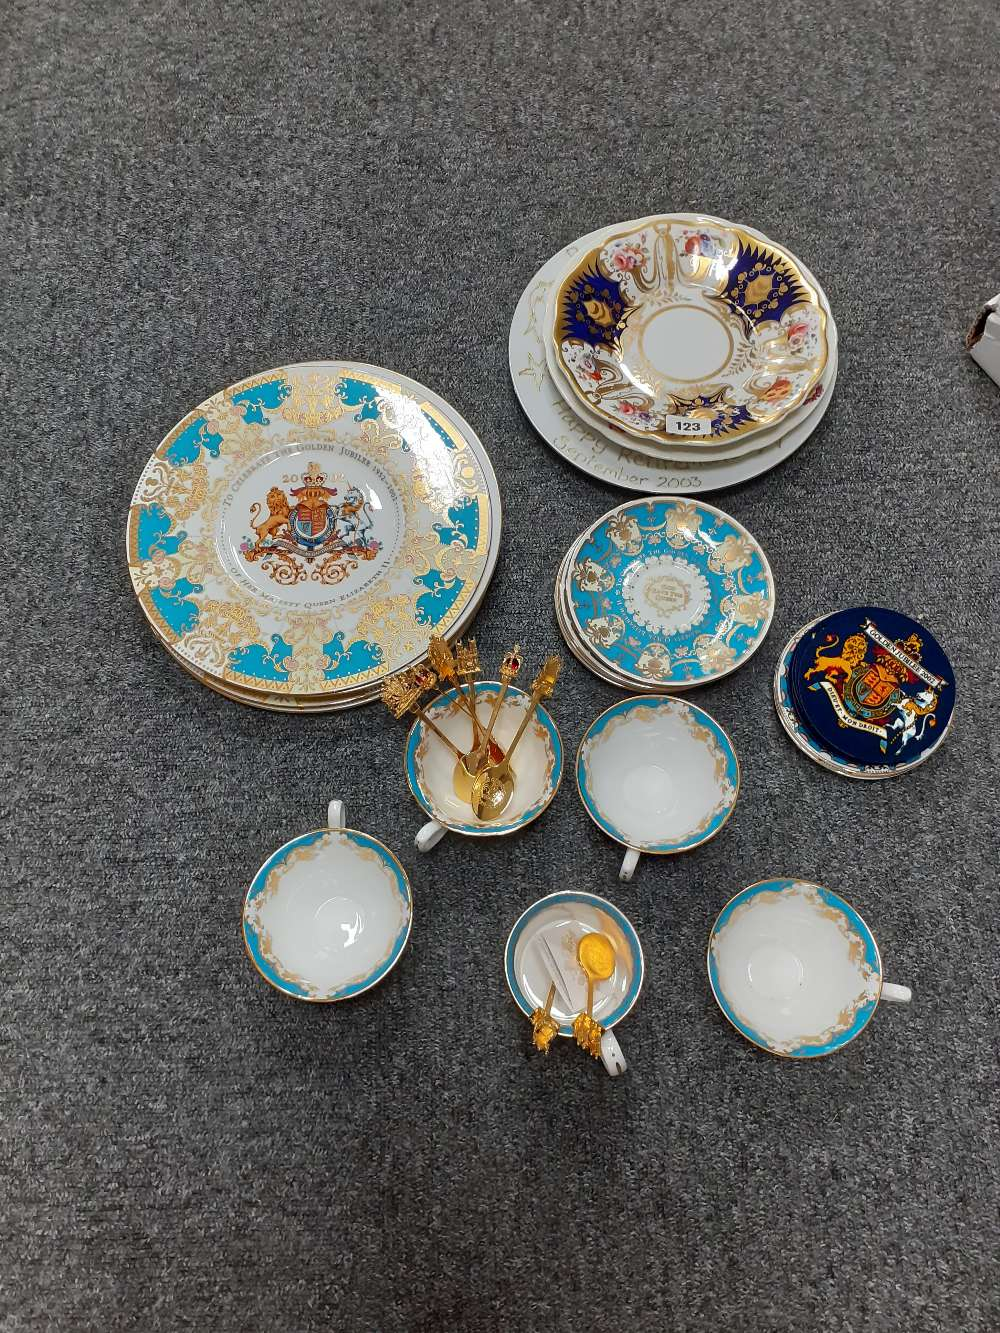 COLLECTION OF COMMEMORATIVE CHINA